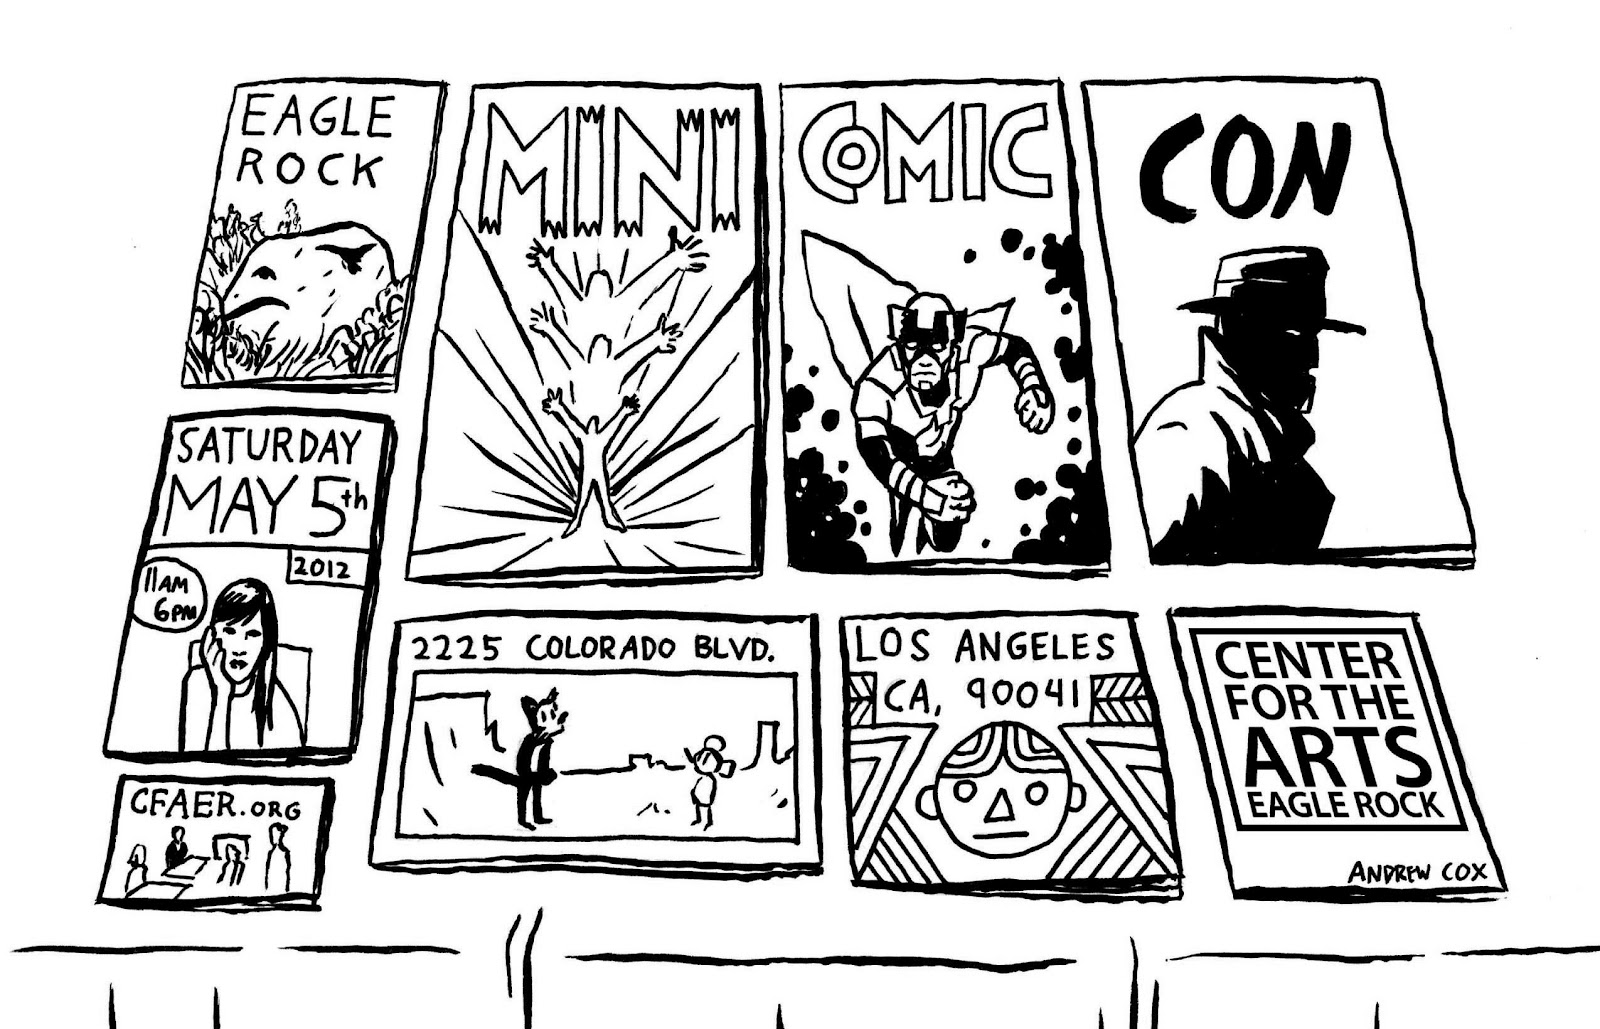 1_Eagle Rock Mini Comic Con_May 2012.jpg